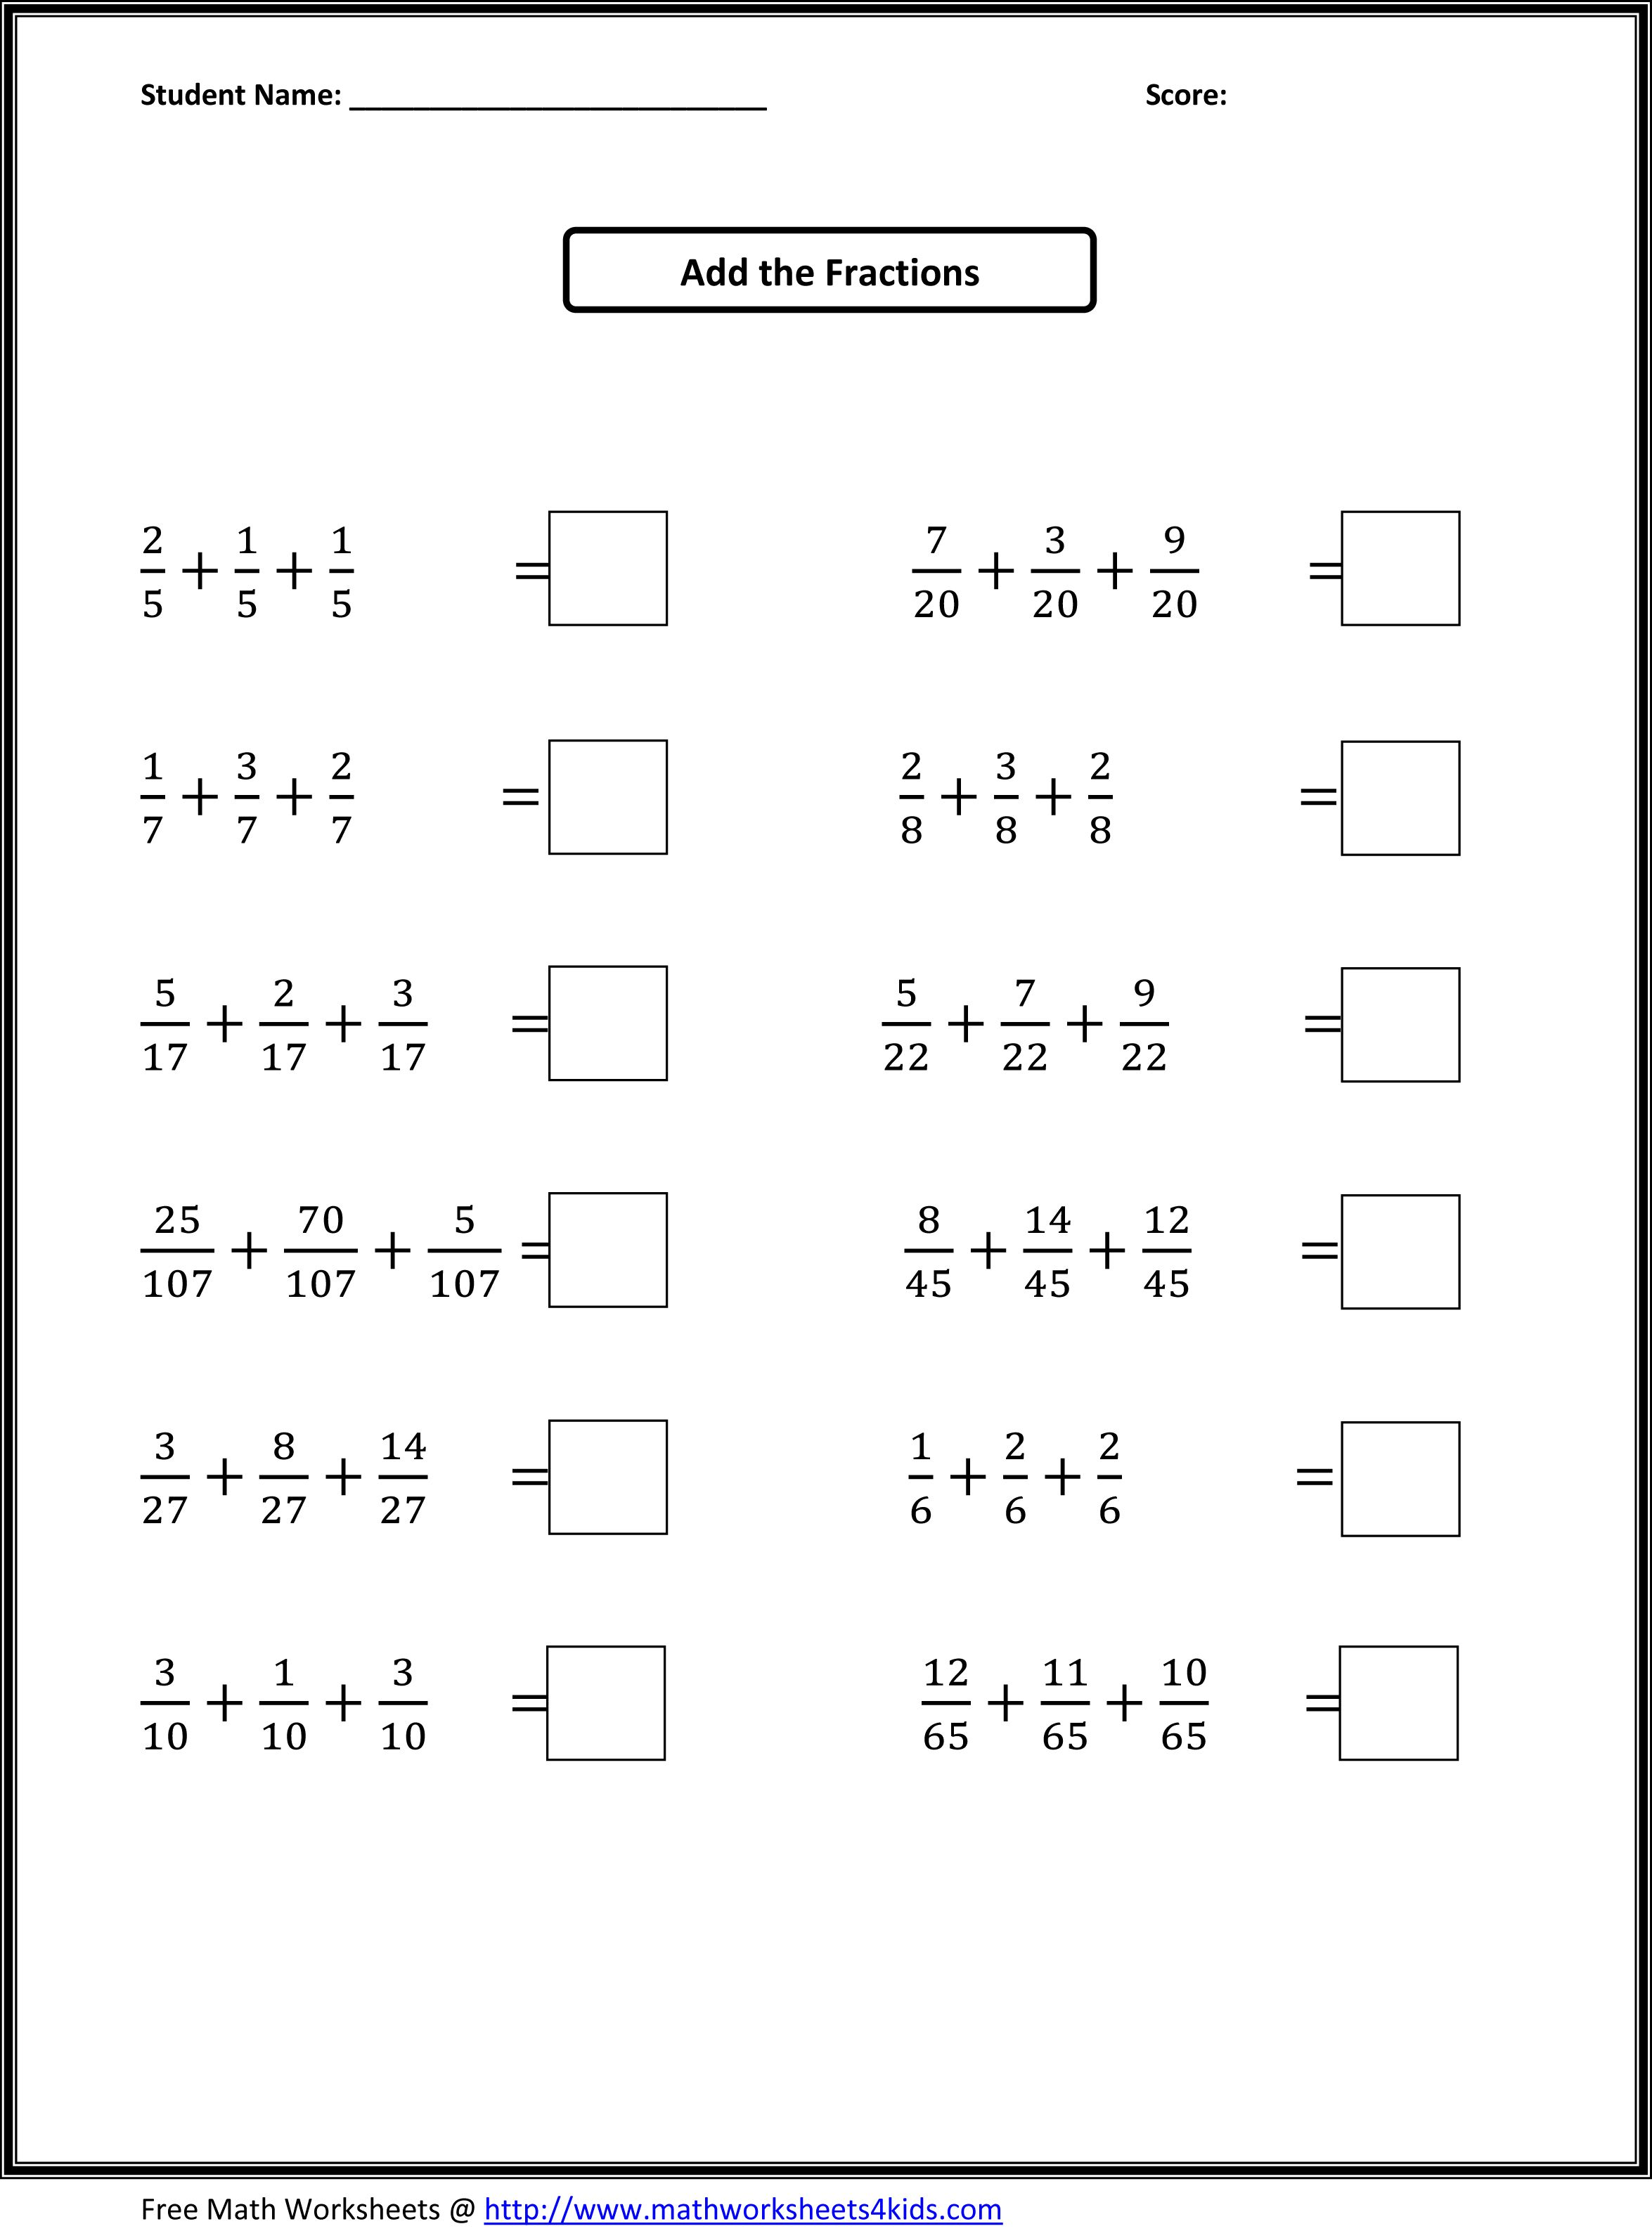 Worksheets Math Worksheets Fourth Grade worksheets for all early ed grades topics of math math